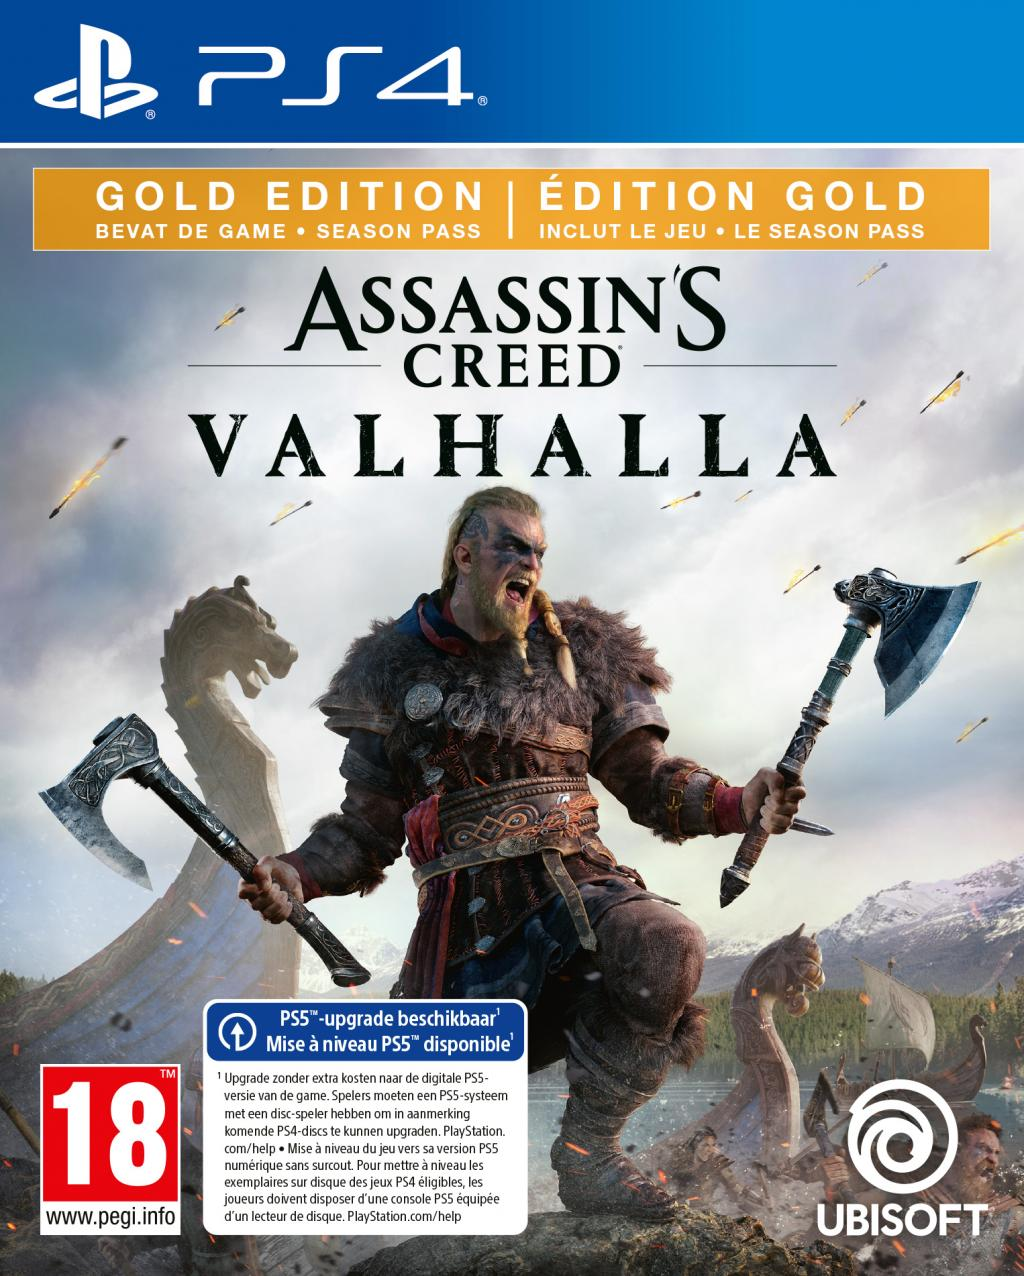 Assassin's Creed Valhalla Gold Edition  - UPGRADE PS5 free_1